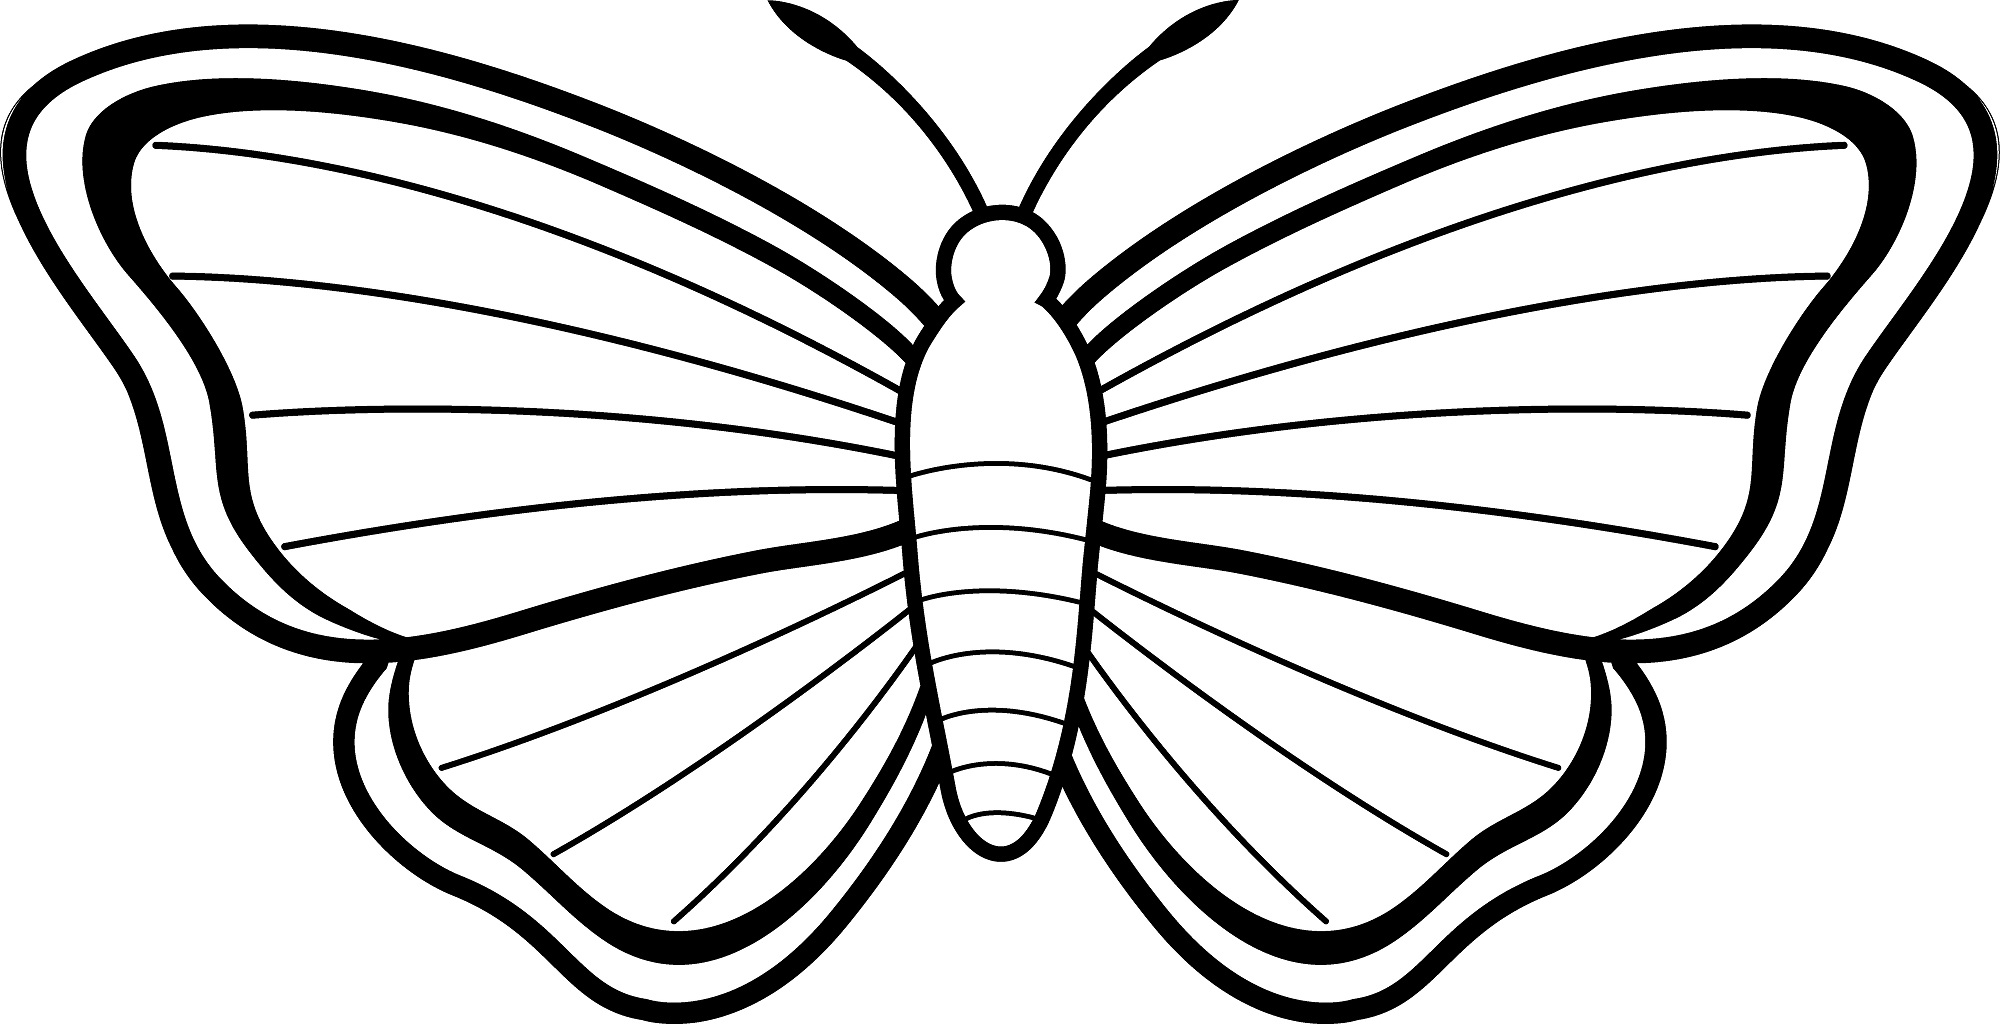 Free Printable Butterfly Coloring Pages For Kids | Coloring Page Of A Butterfly  | title